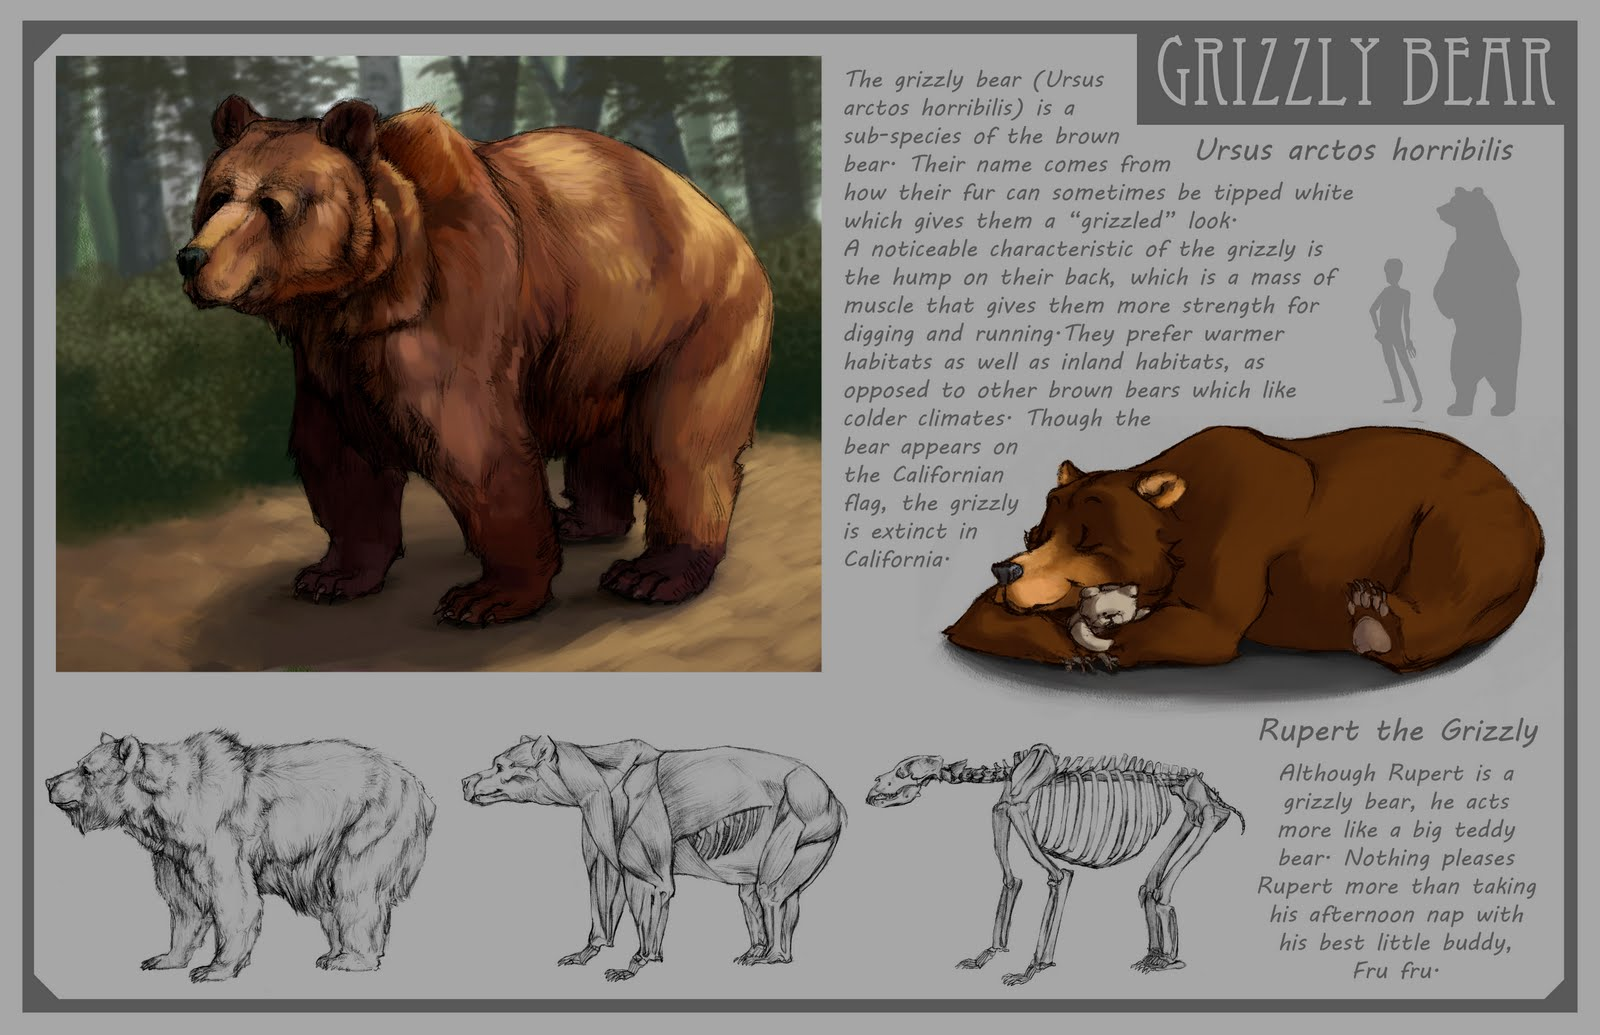 Chelsea Loren Edwards Sketchblog: Grizzly Bear